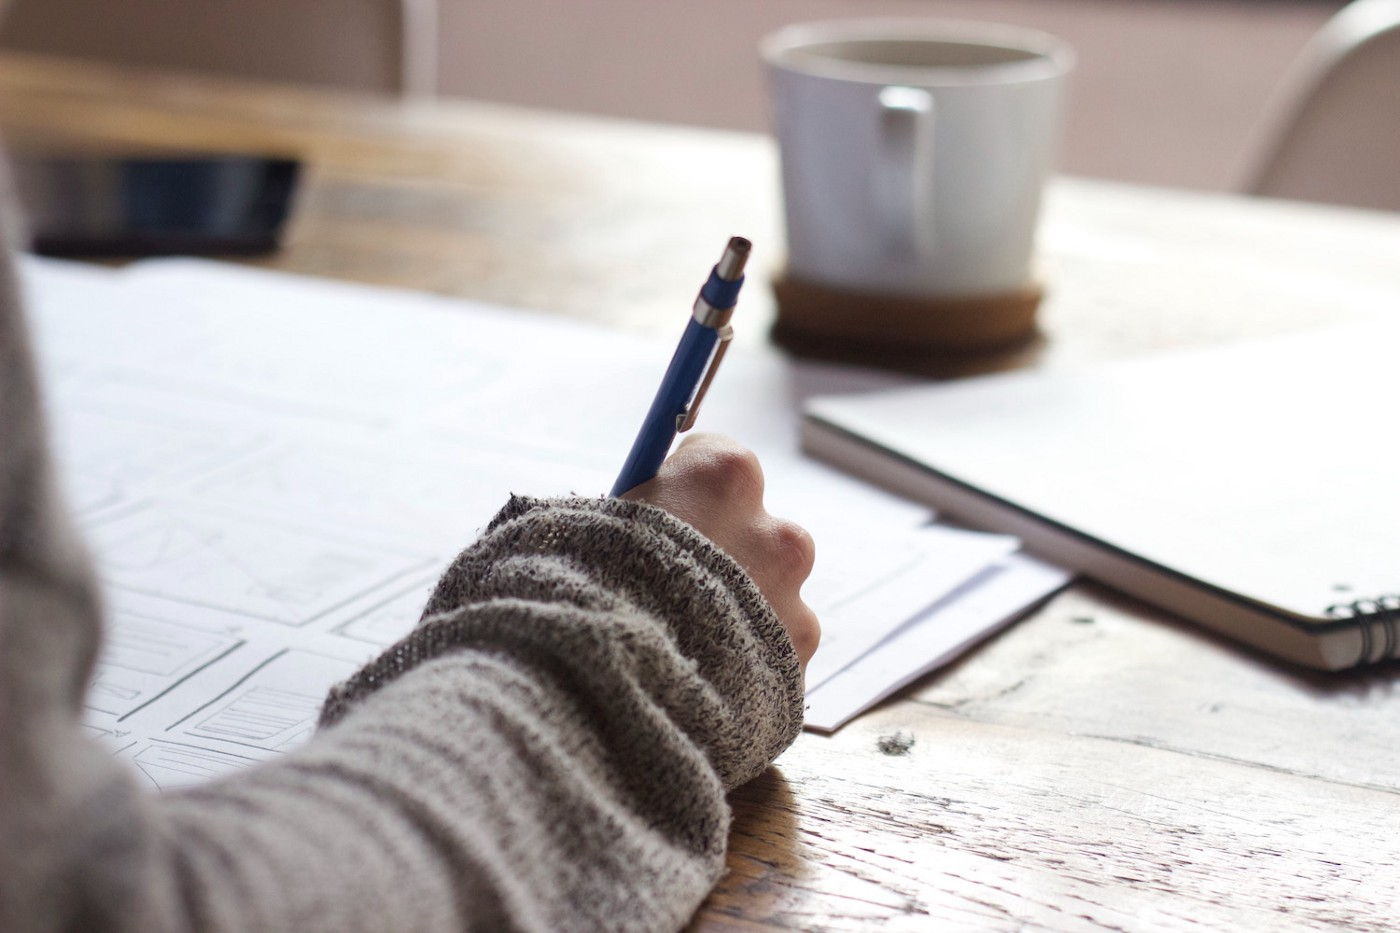 Photo of a person sketching in a notebook next to a cup of coffee.